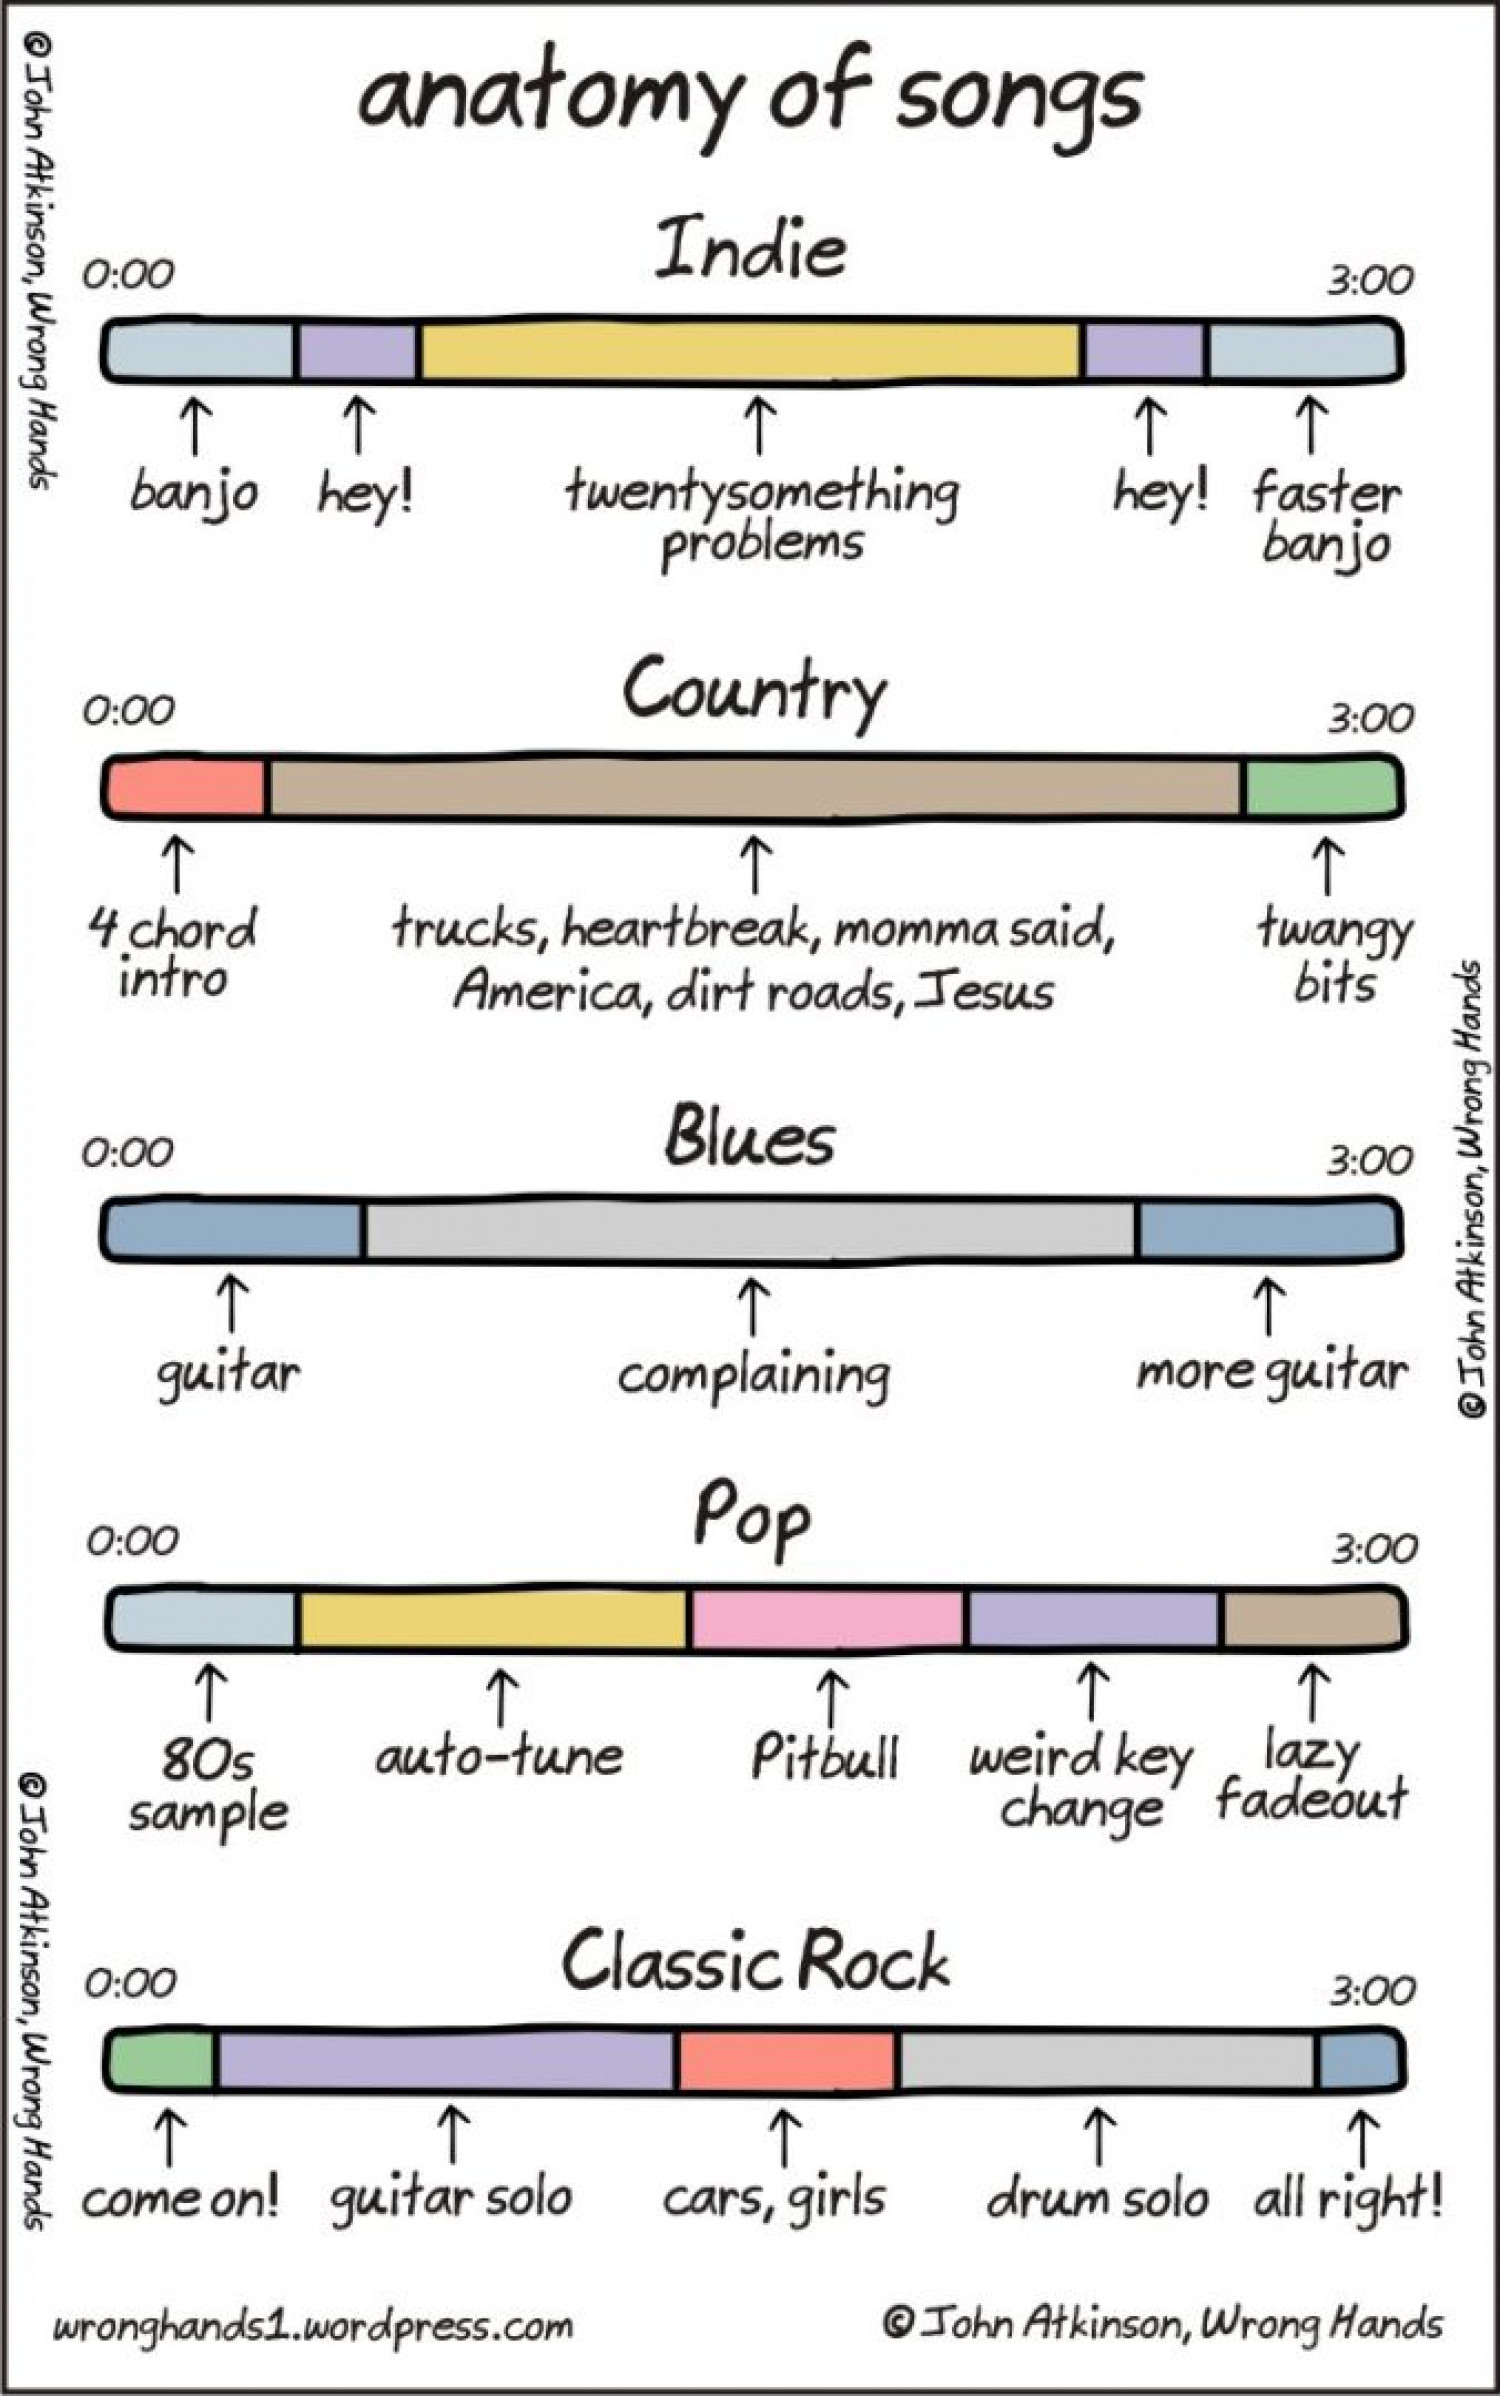 Anatomy of Songs Infographic